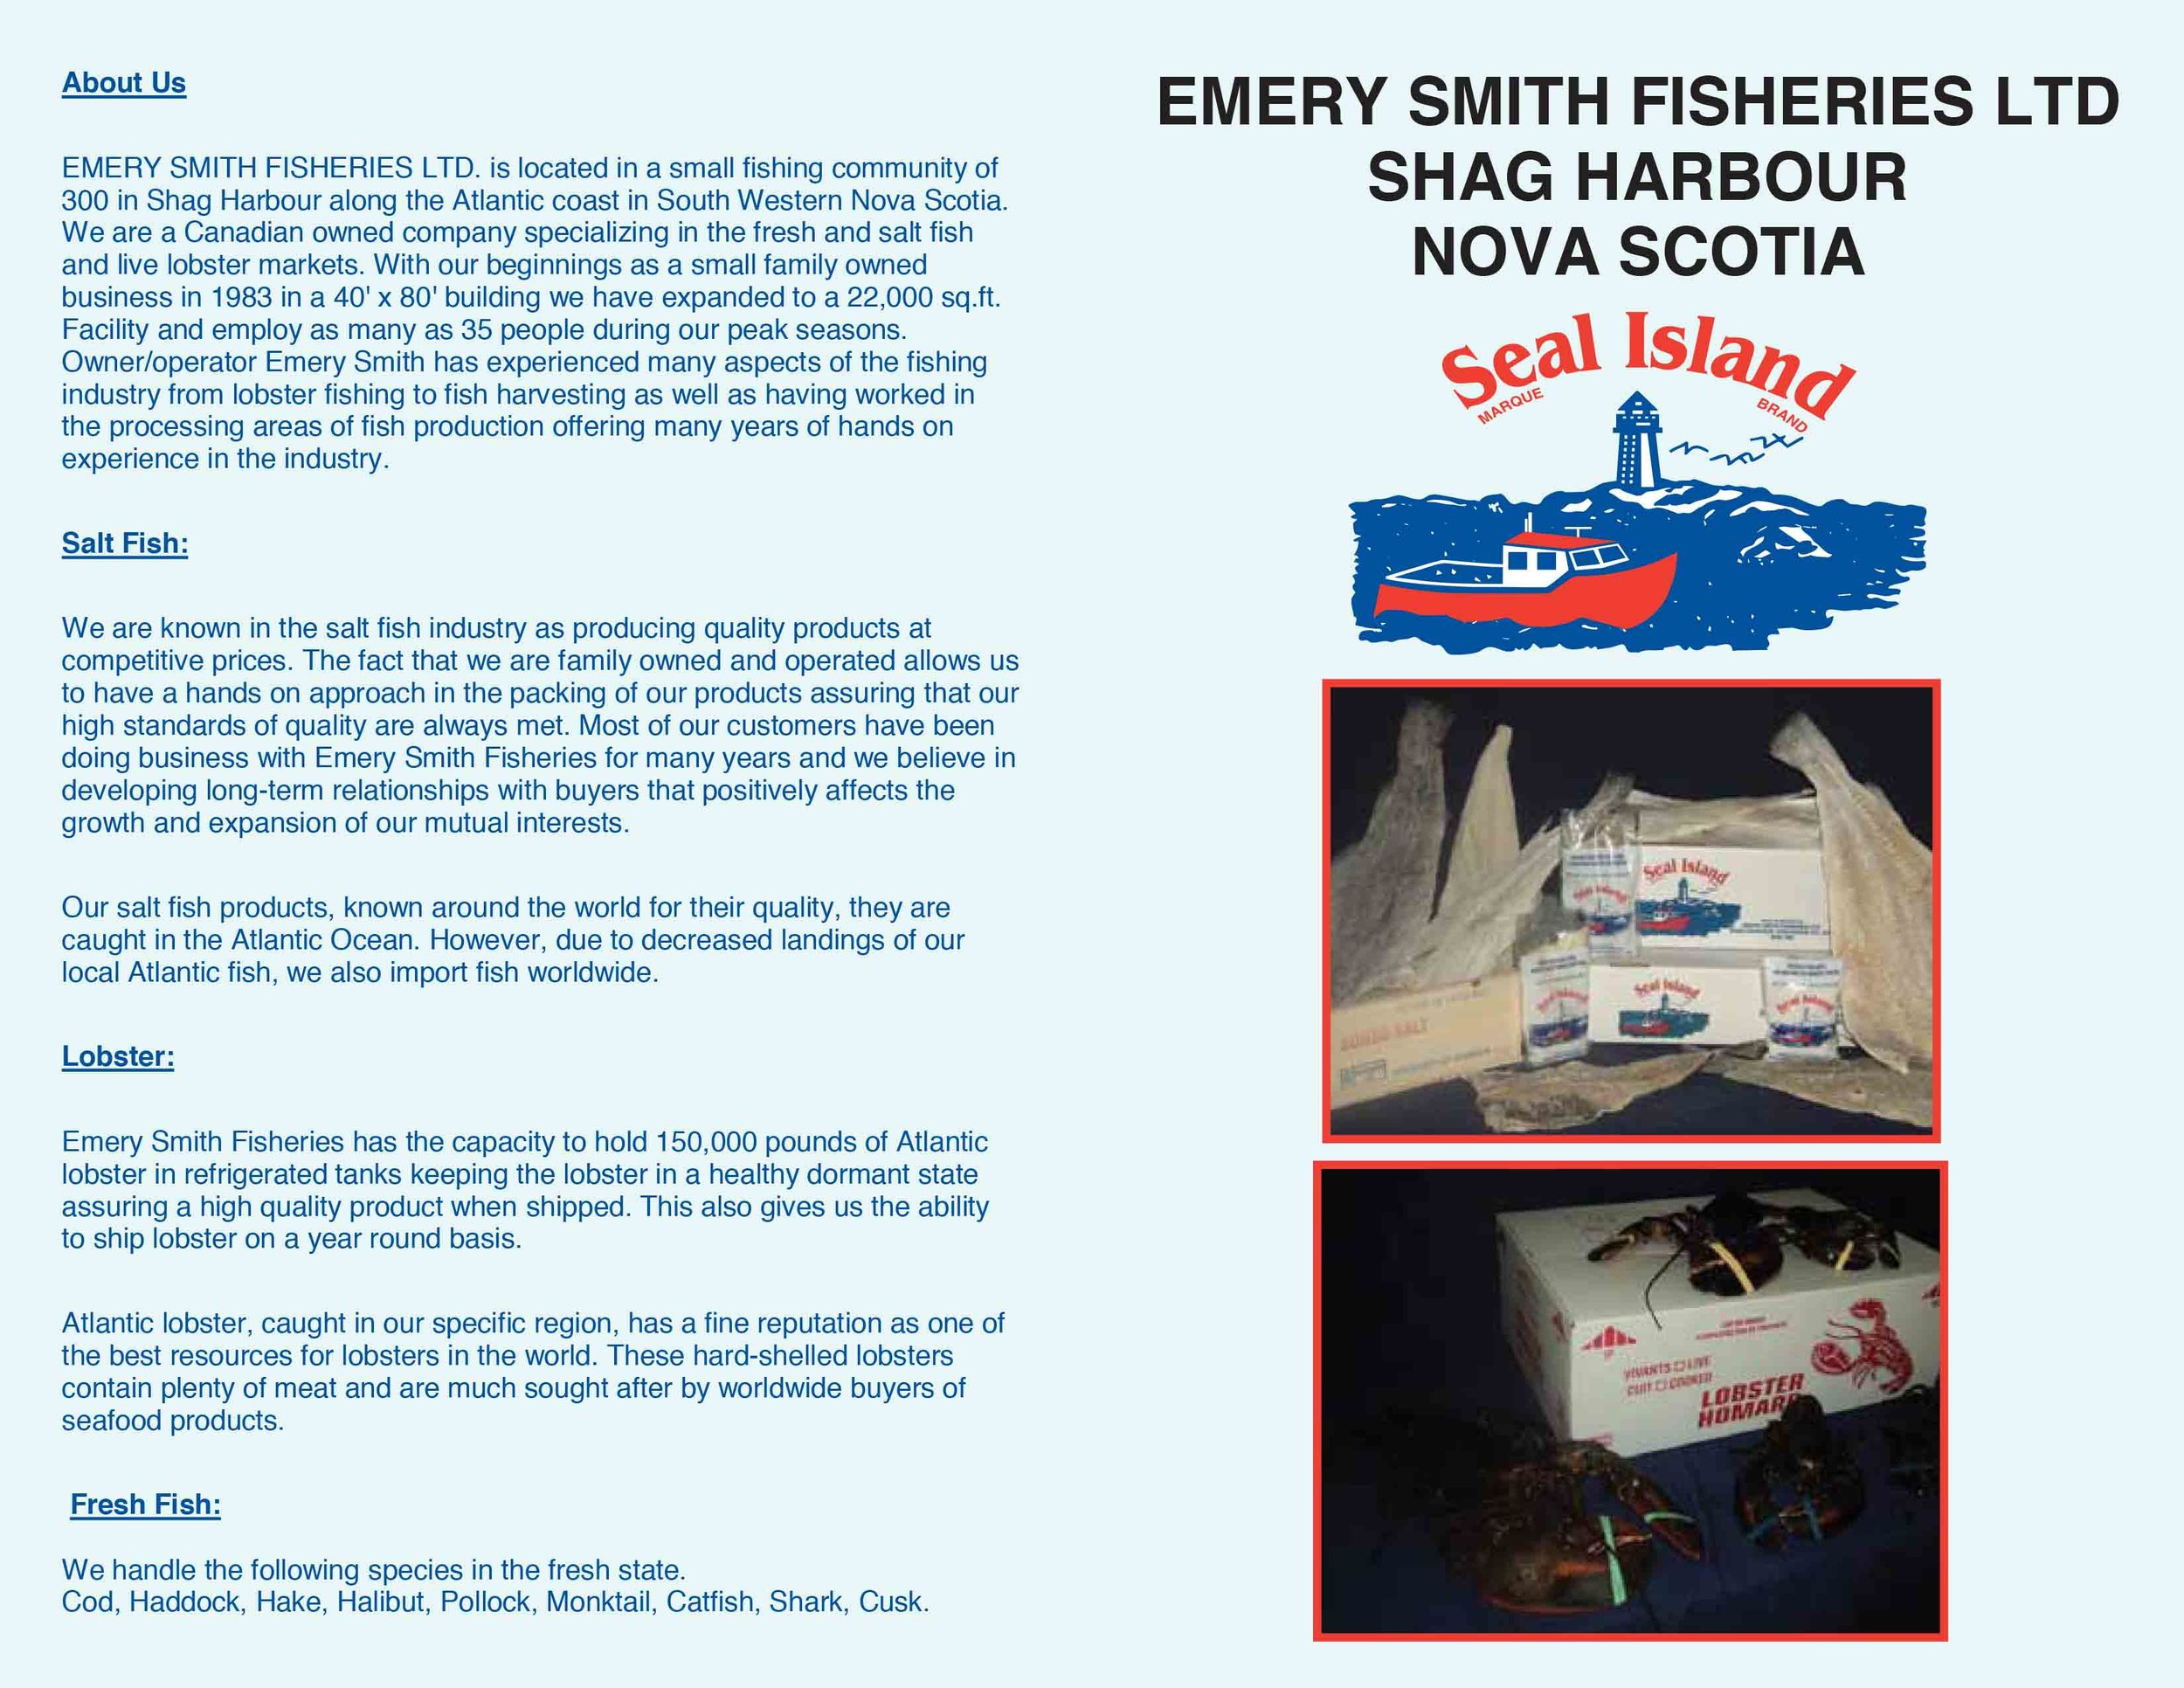 Emery Smith Fish----ESF 35366 Brochures.jpg